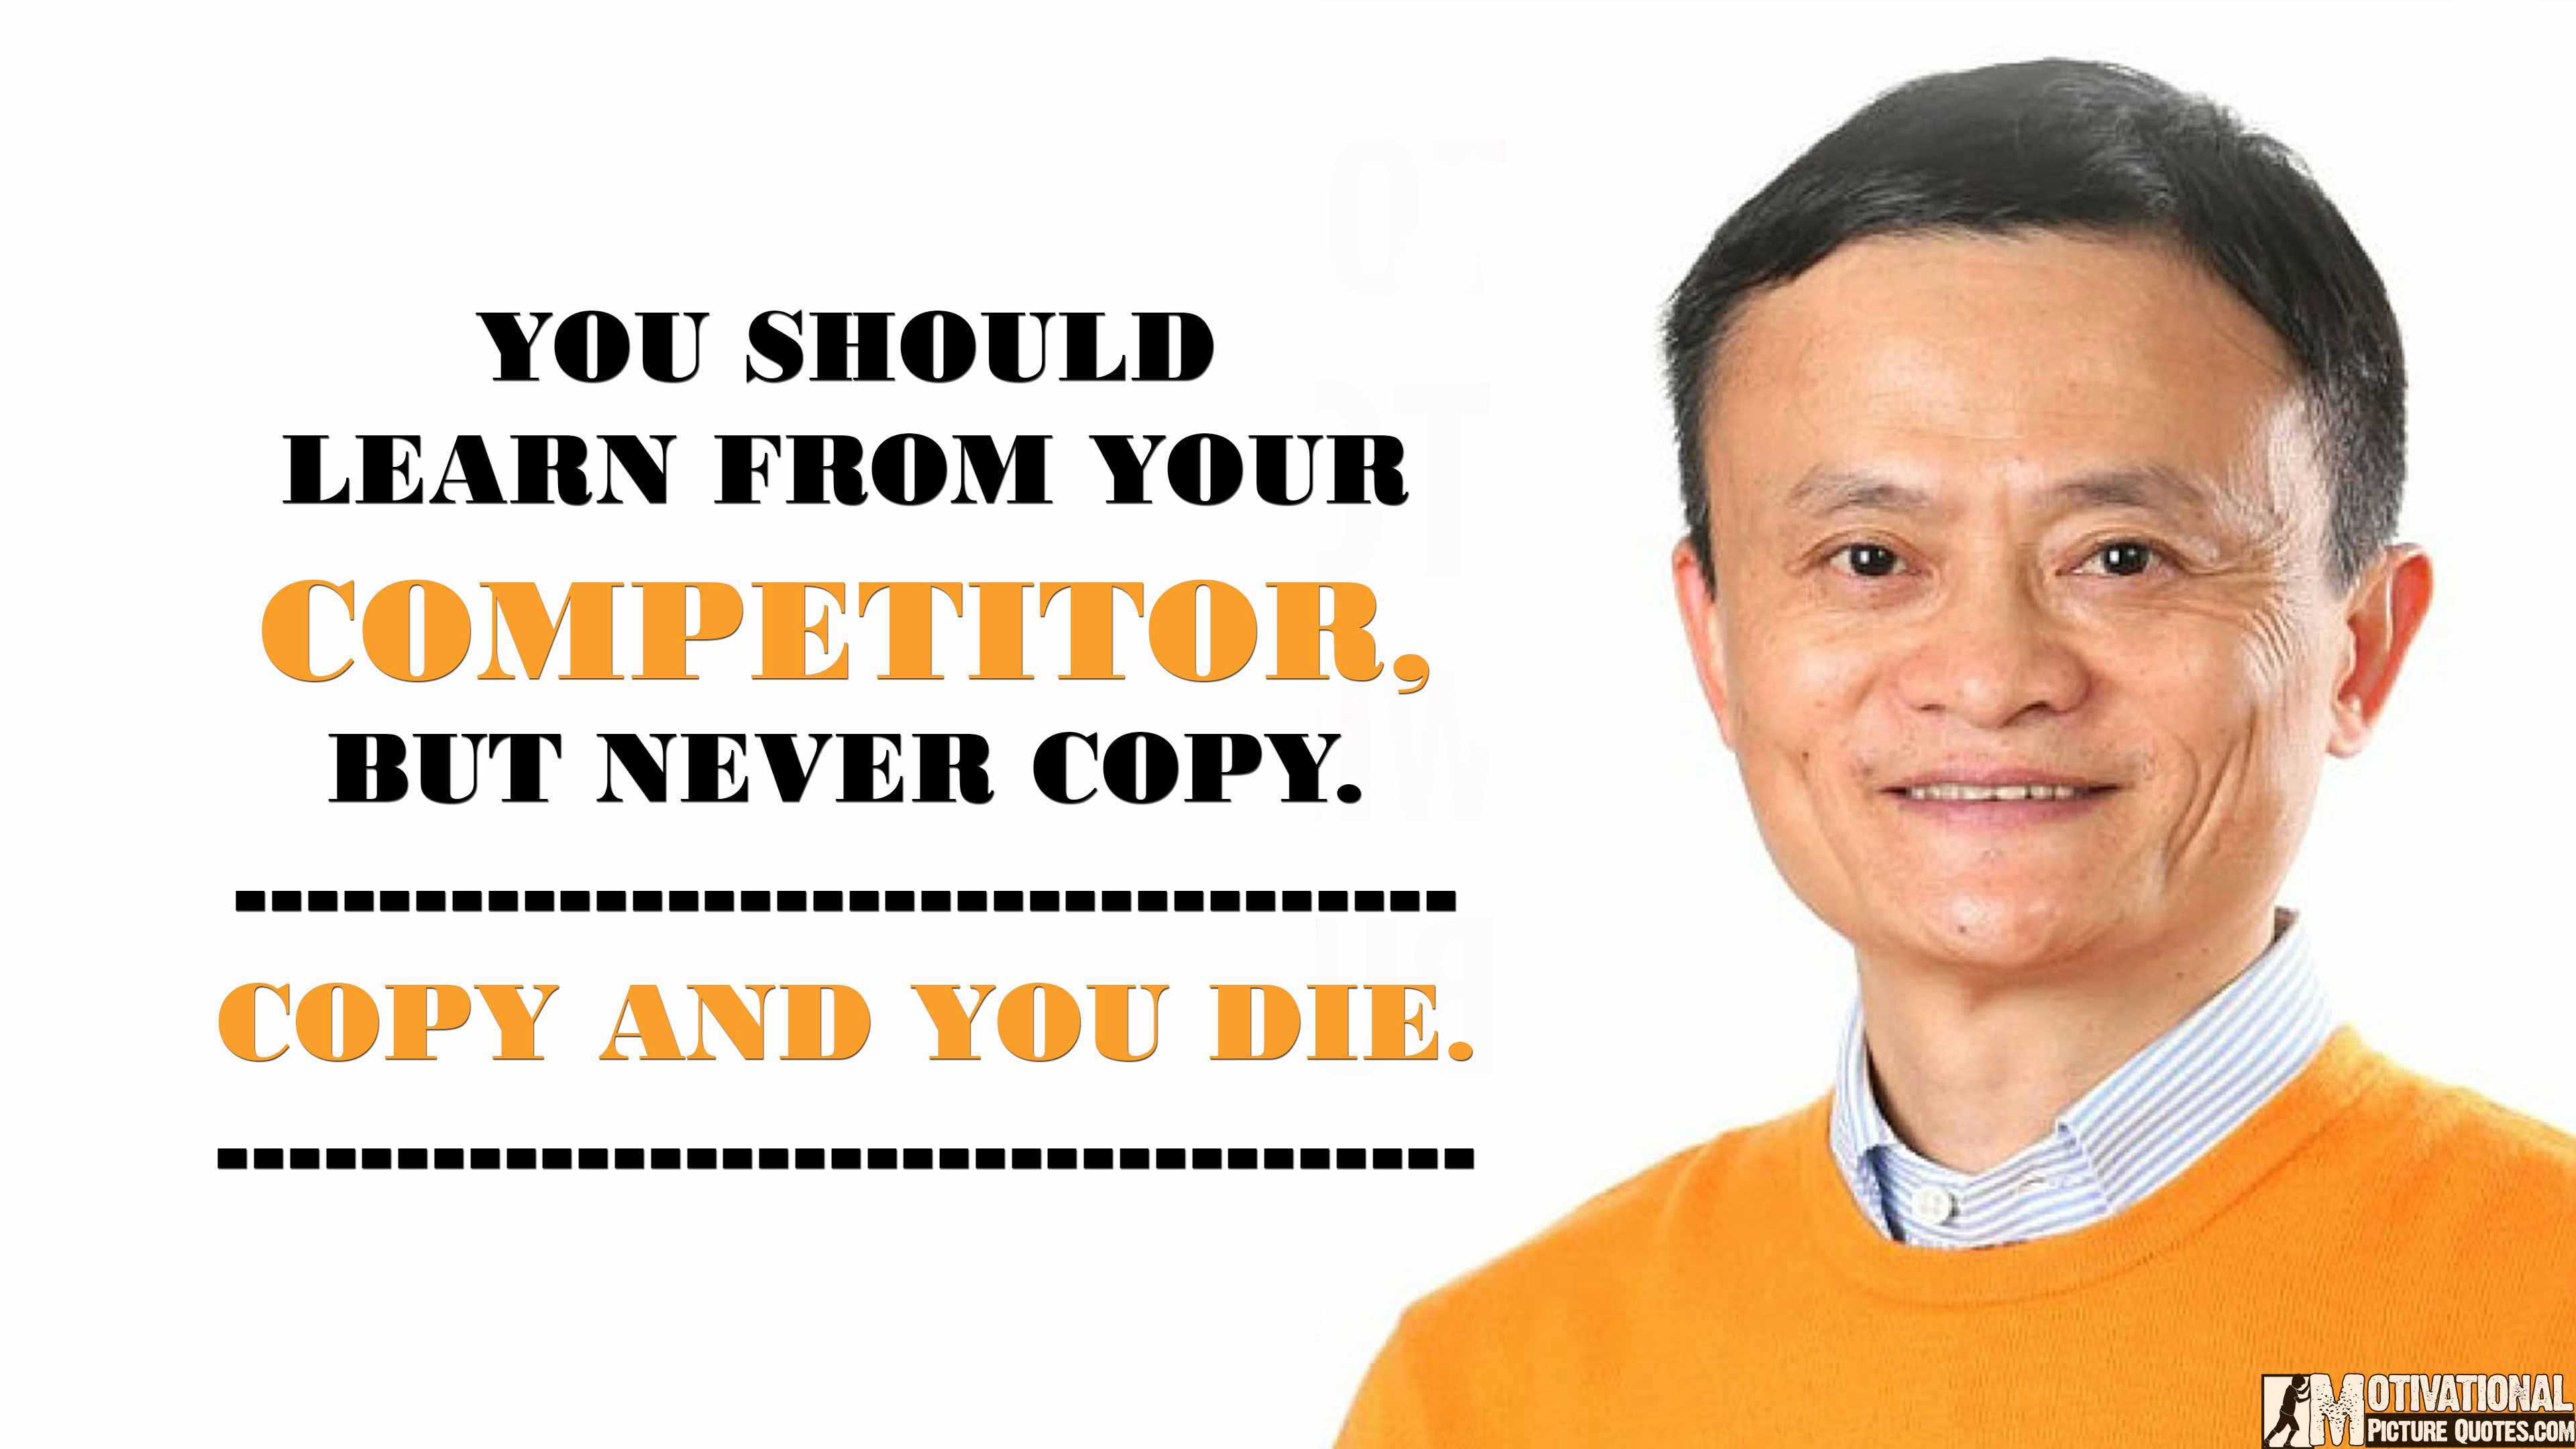 Alibaba Founder Jack Ma Quotes For Entrepreneurs | Insbright